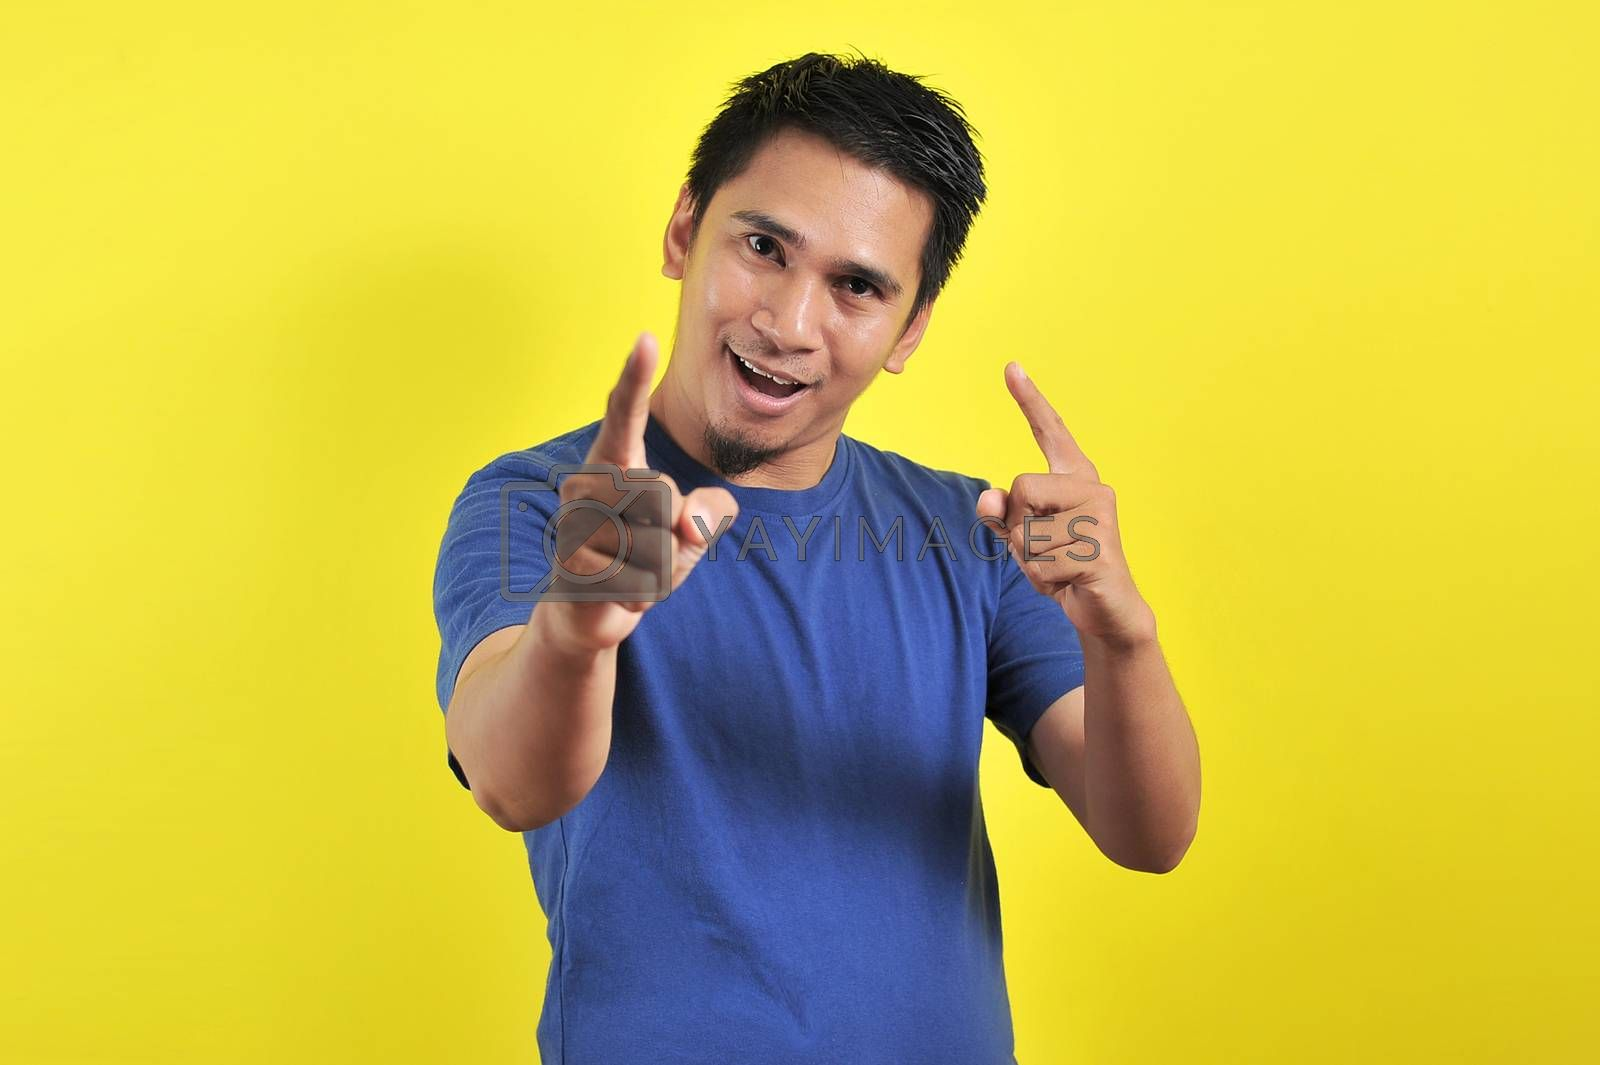 Young asian man happy and excited expressing winning gesture. Successful and celebrating on yellow background